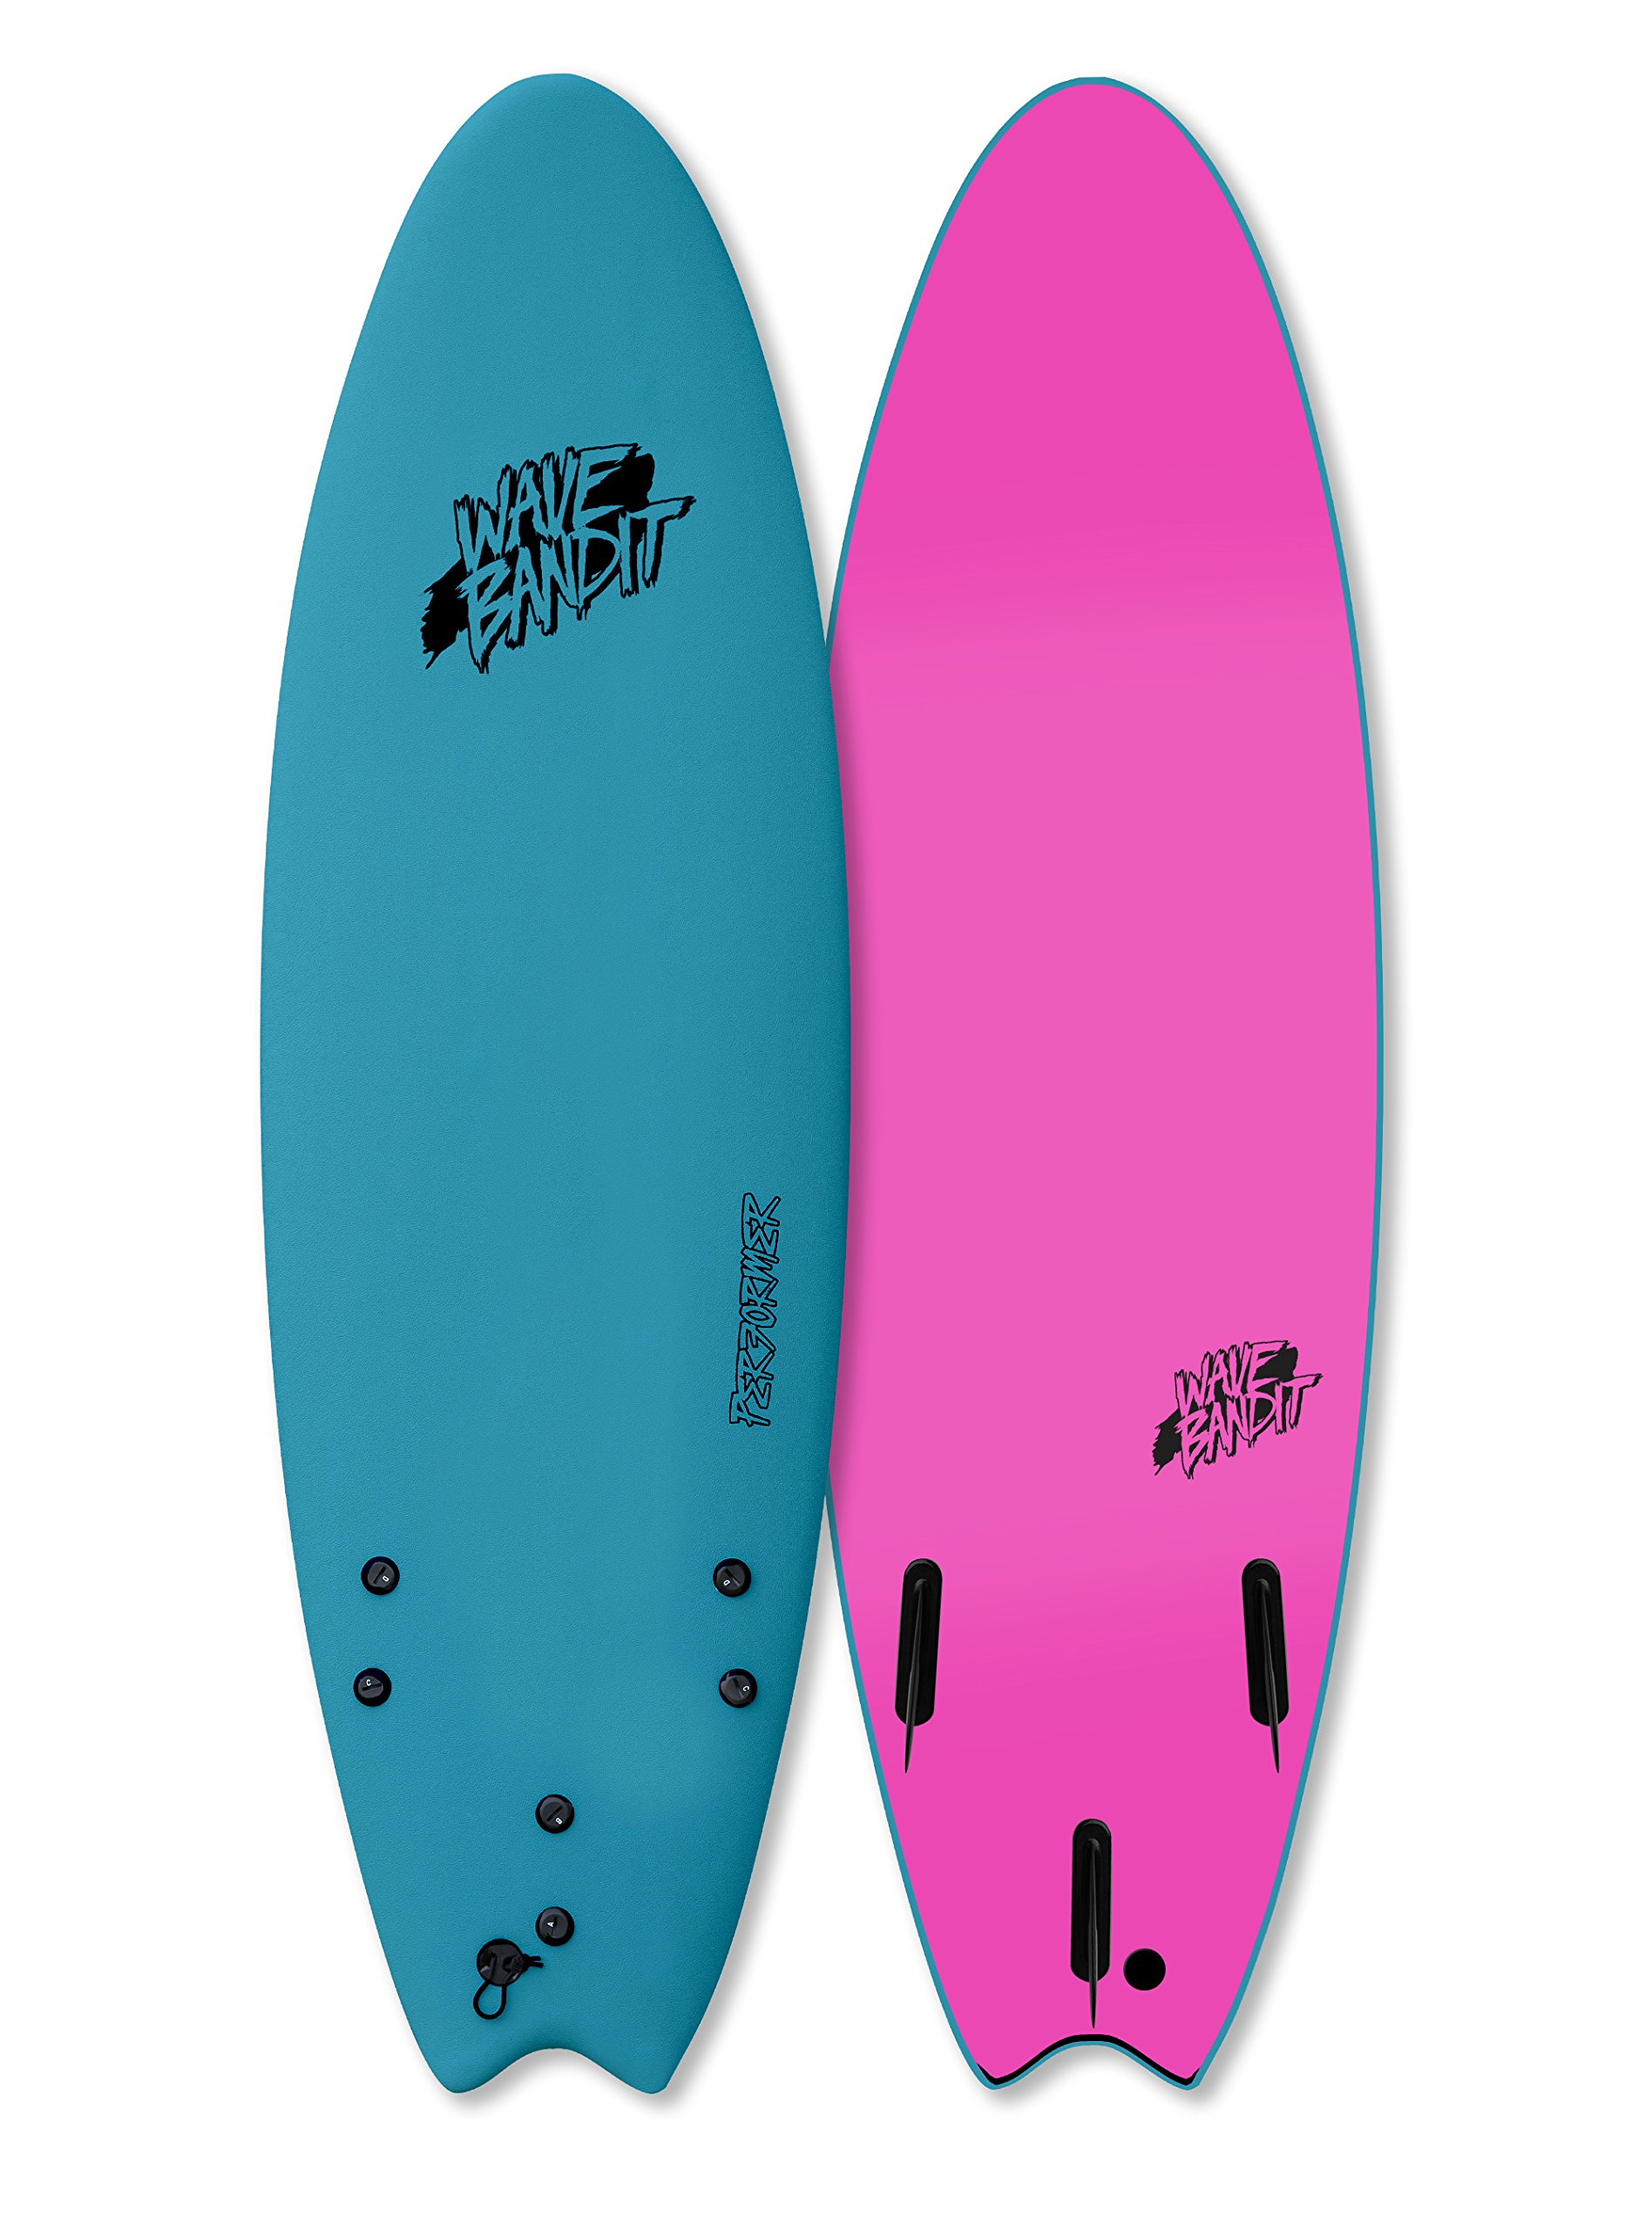 Wave Bandit Performer Tri, Steel Blue, 6'6''